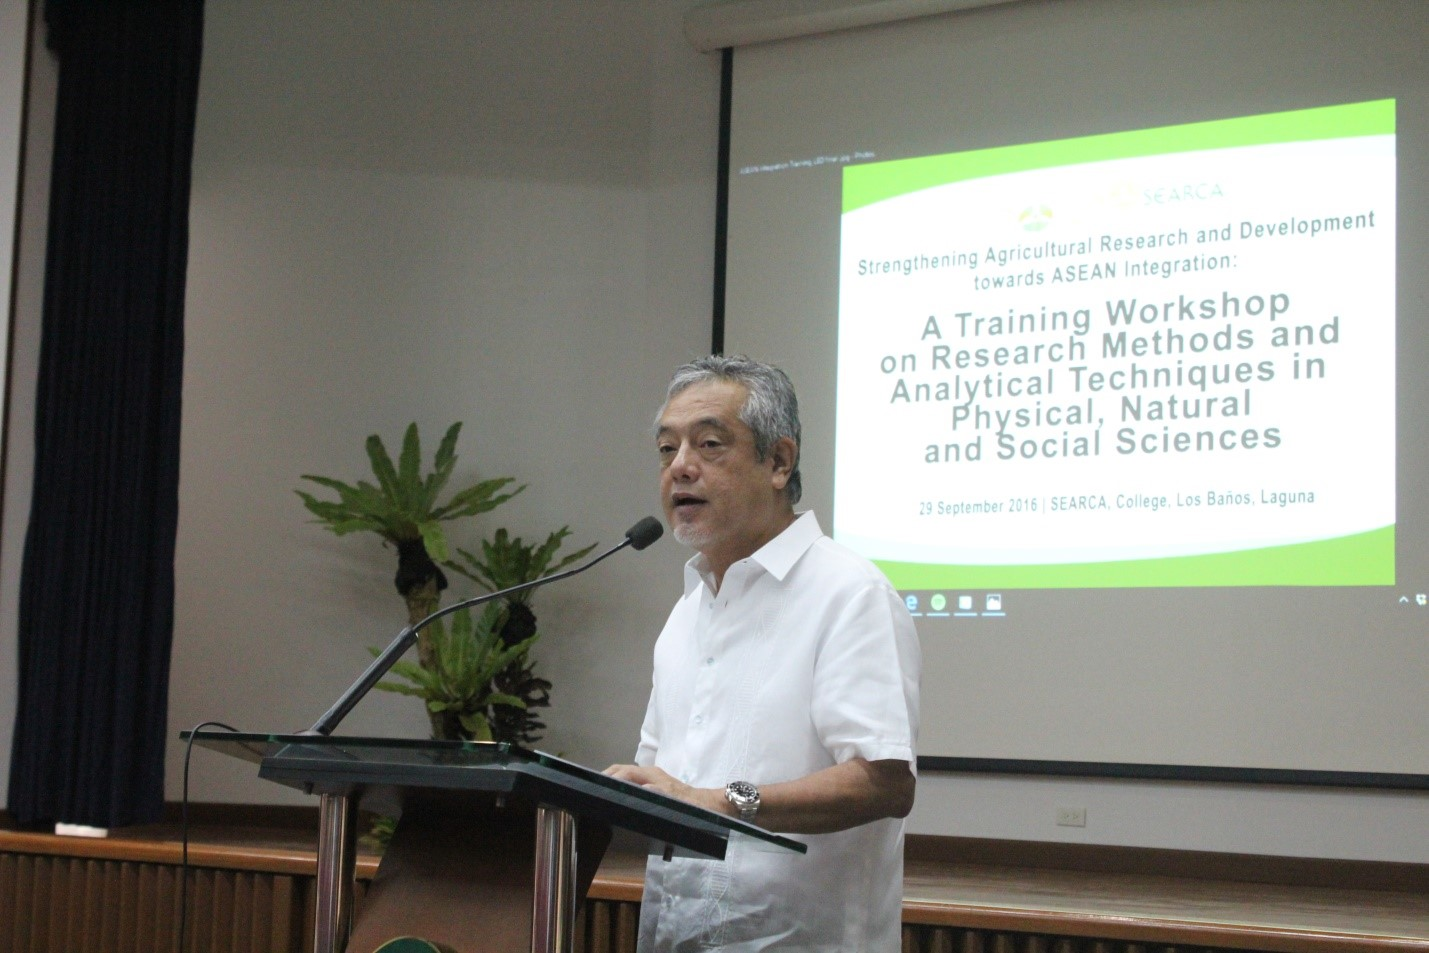 Dr. Gil C. Saguiguit, Jr., SEARCA Director, delivering his welcoming remarks during the training